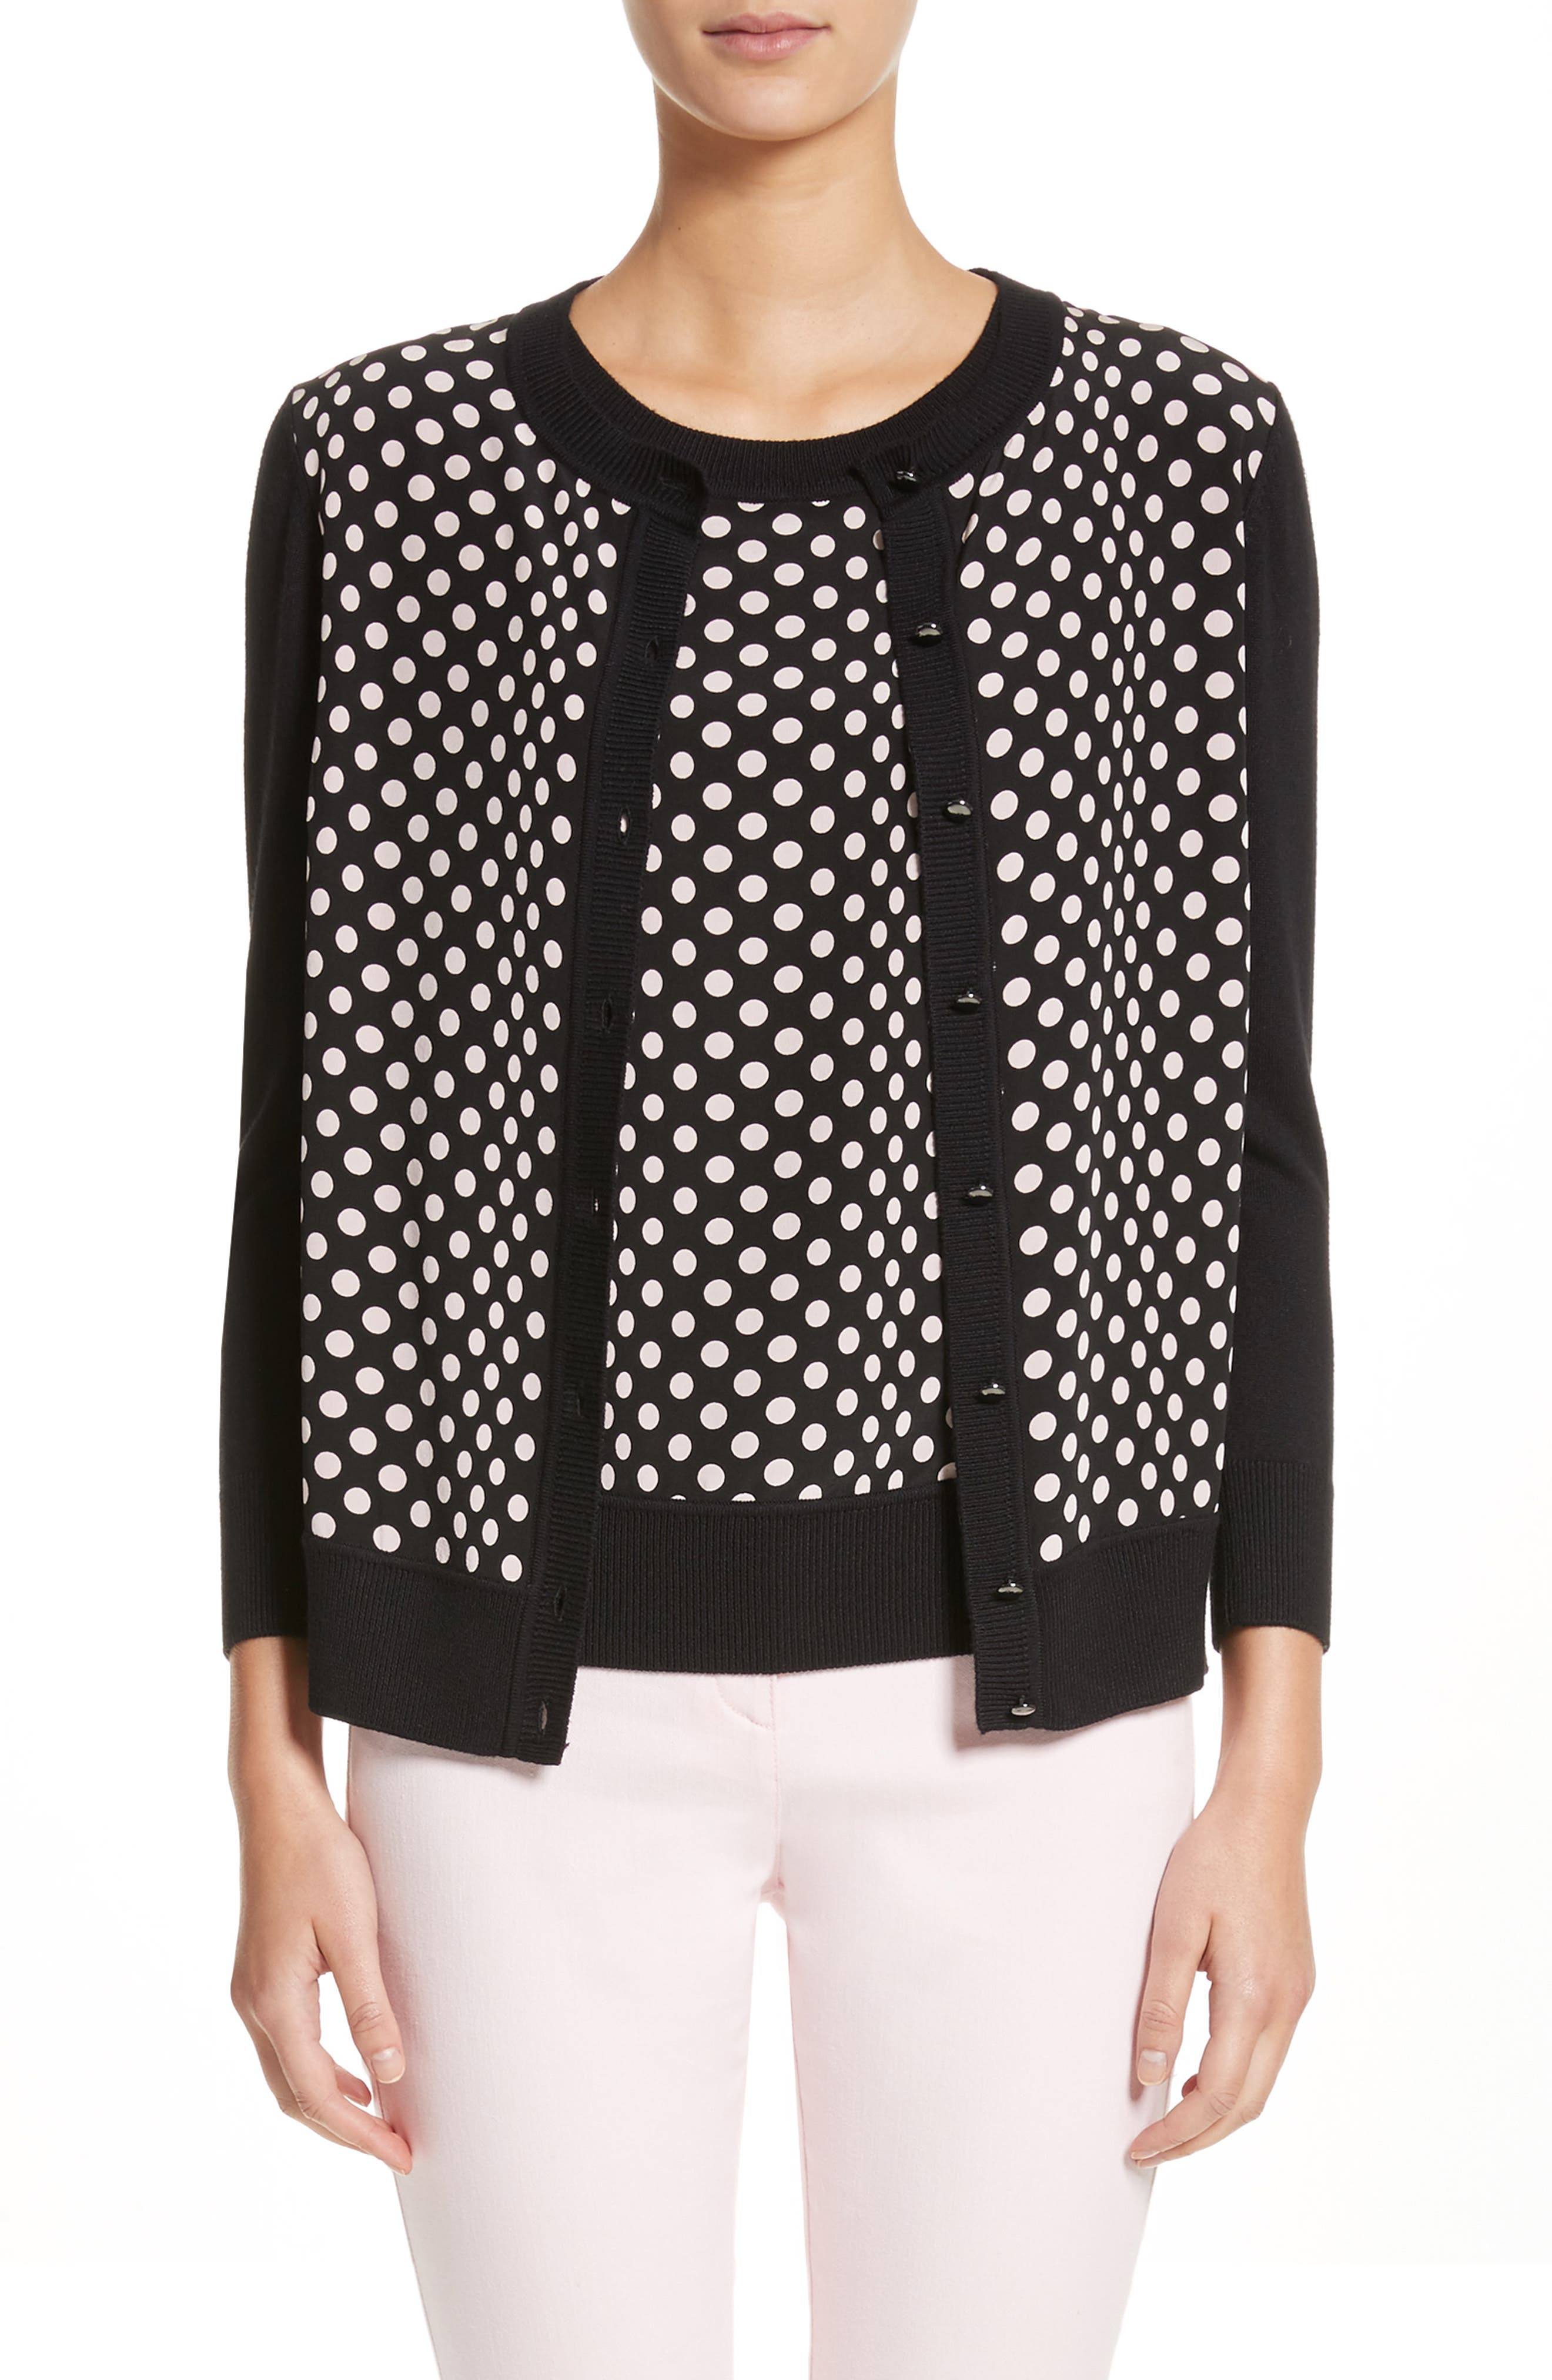 Alternate Image 1 Selected - St. John Collection Polka Dot Cardigan